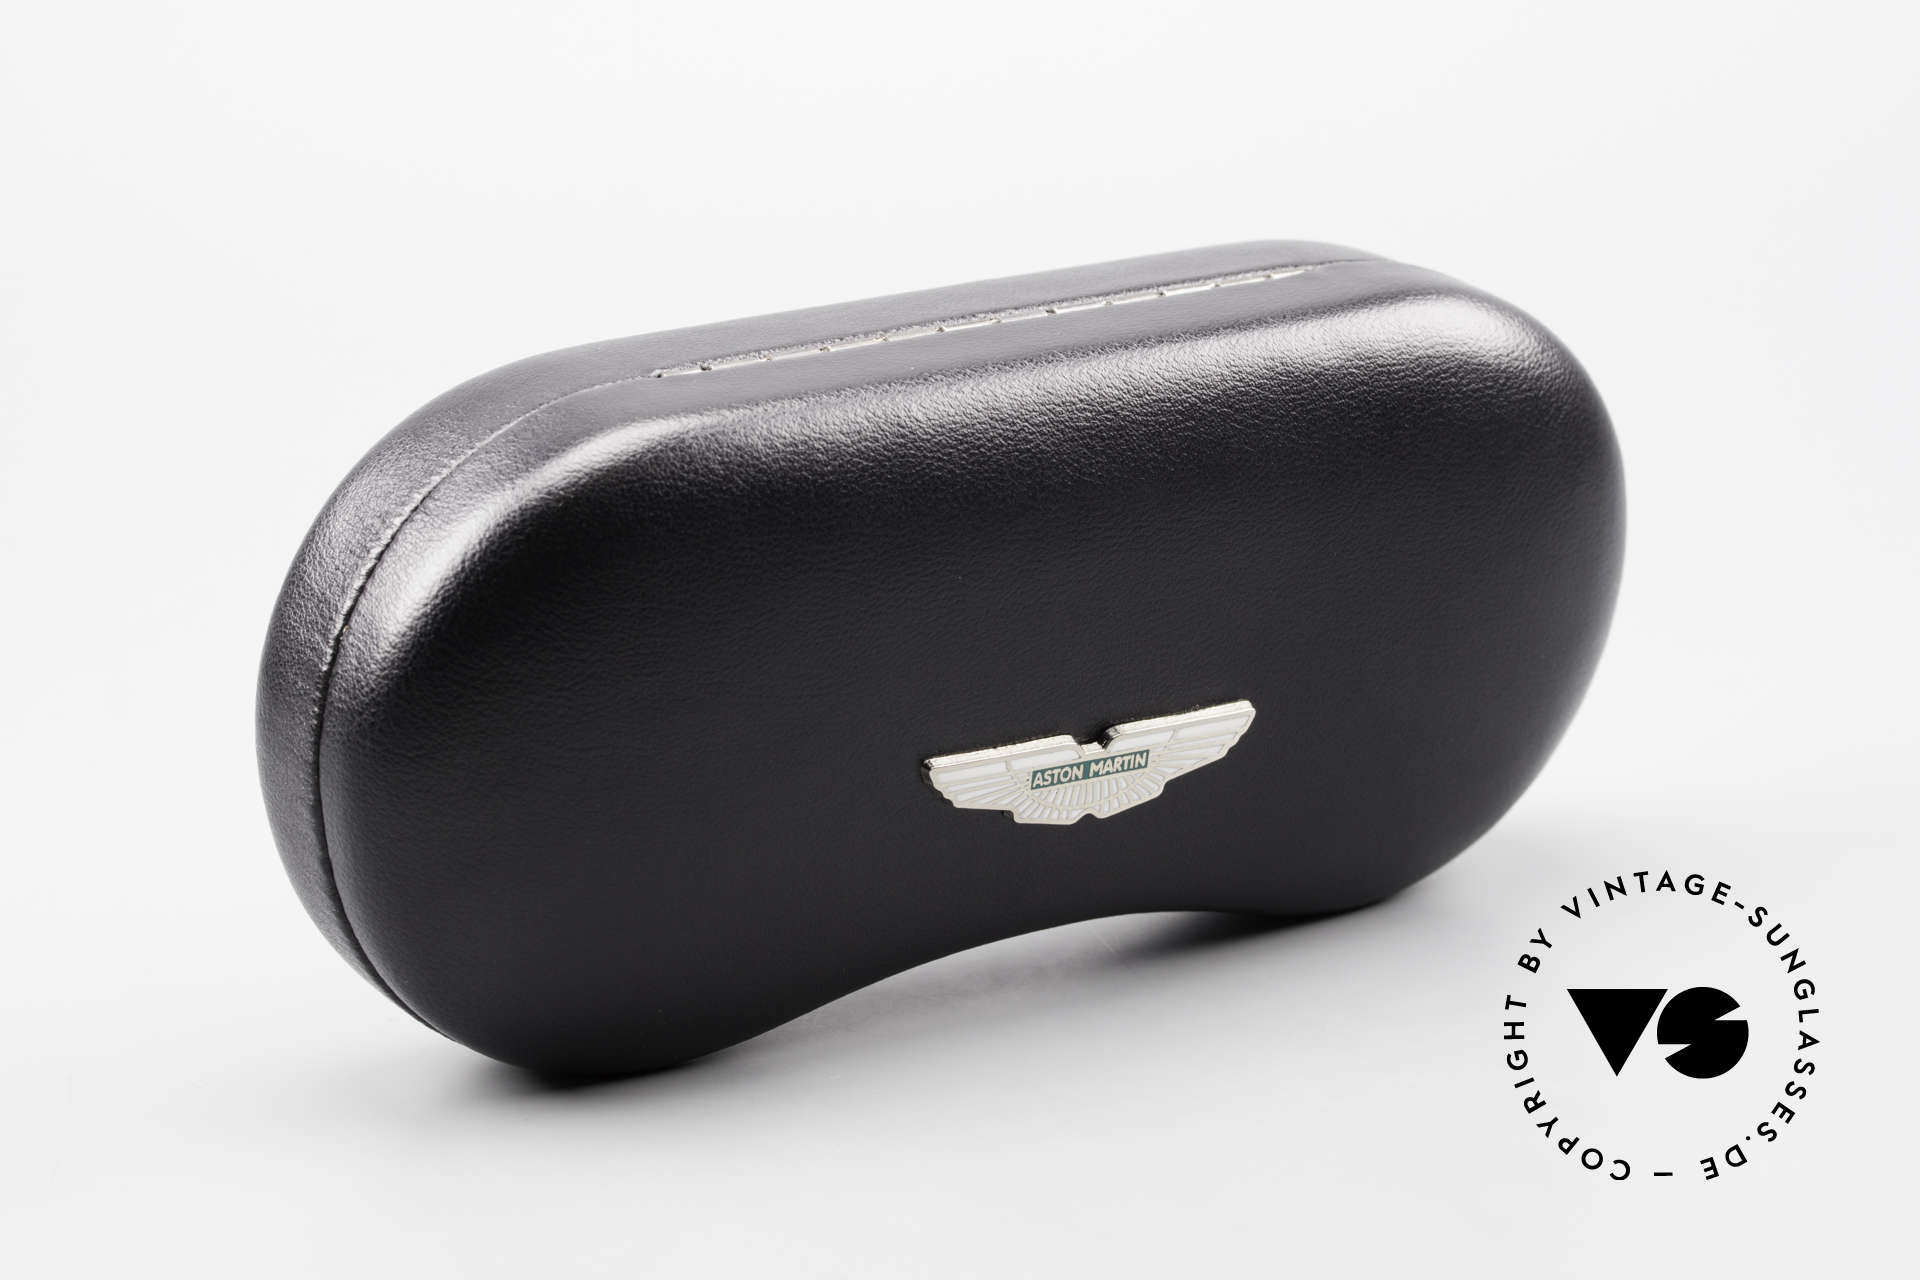 Aston Martin AM13 Oval Sunglasses James Bond, never worn (like all our rare VINTAGE high-end shades), Made for Men